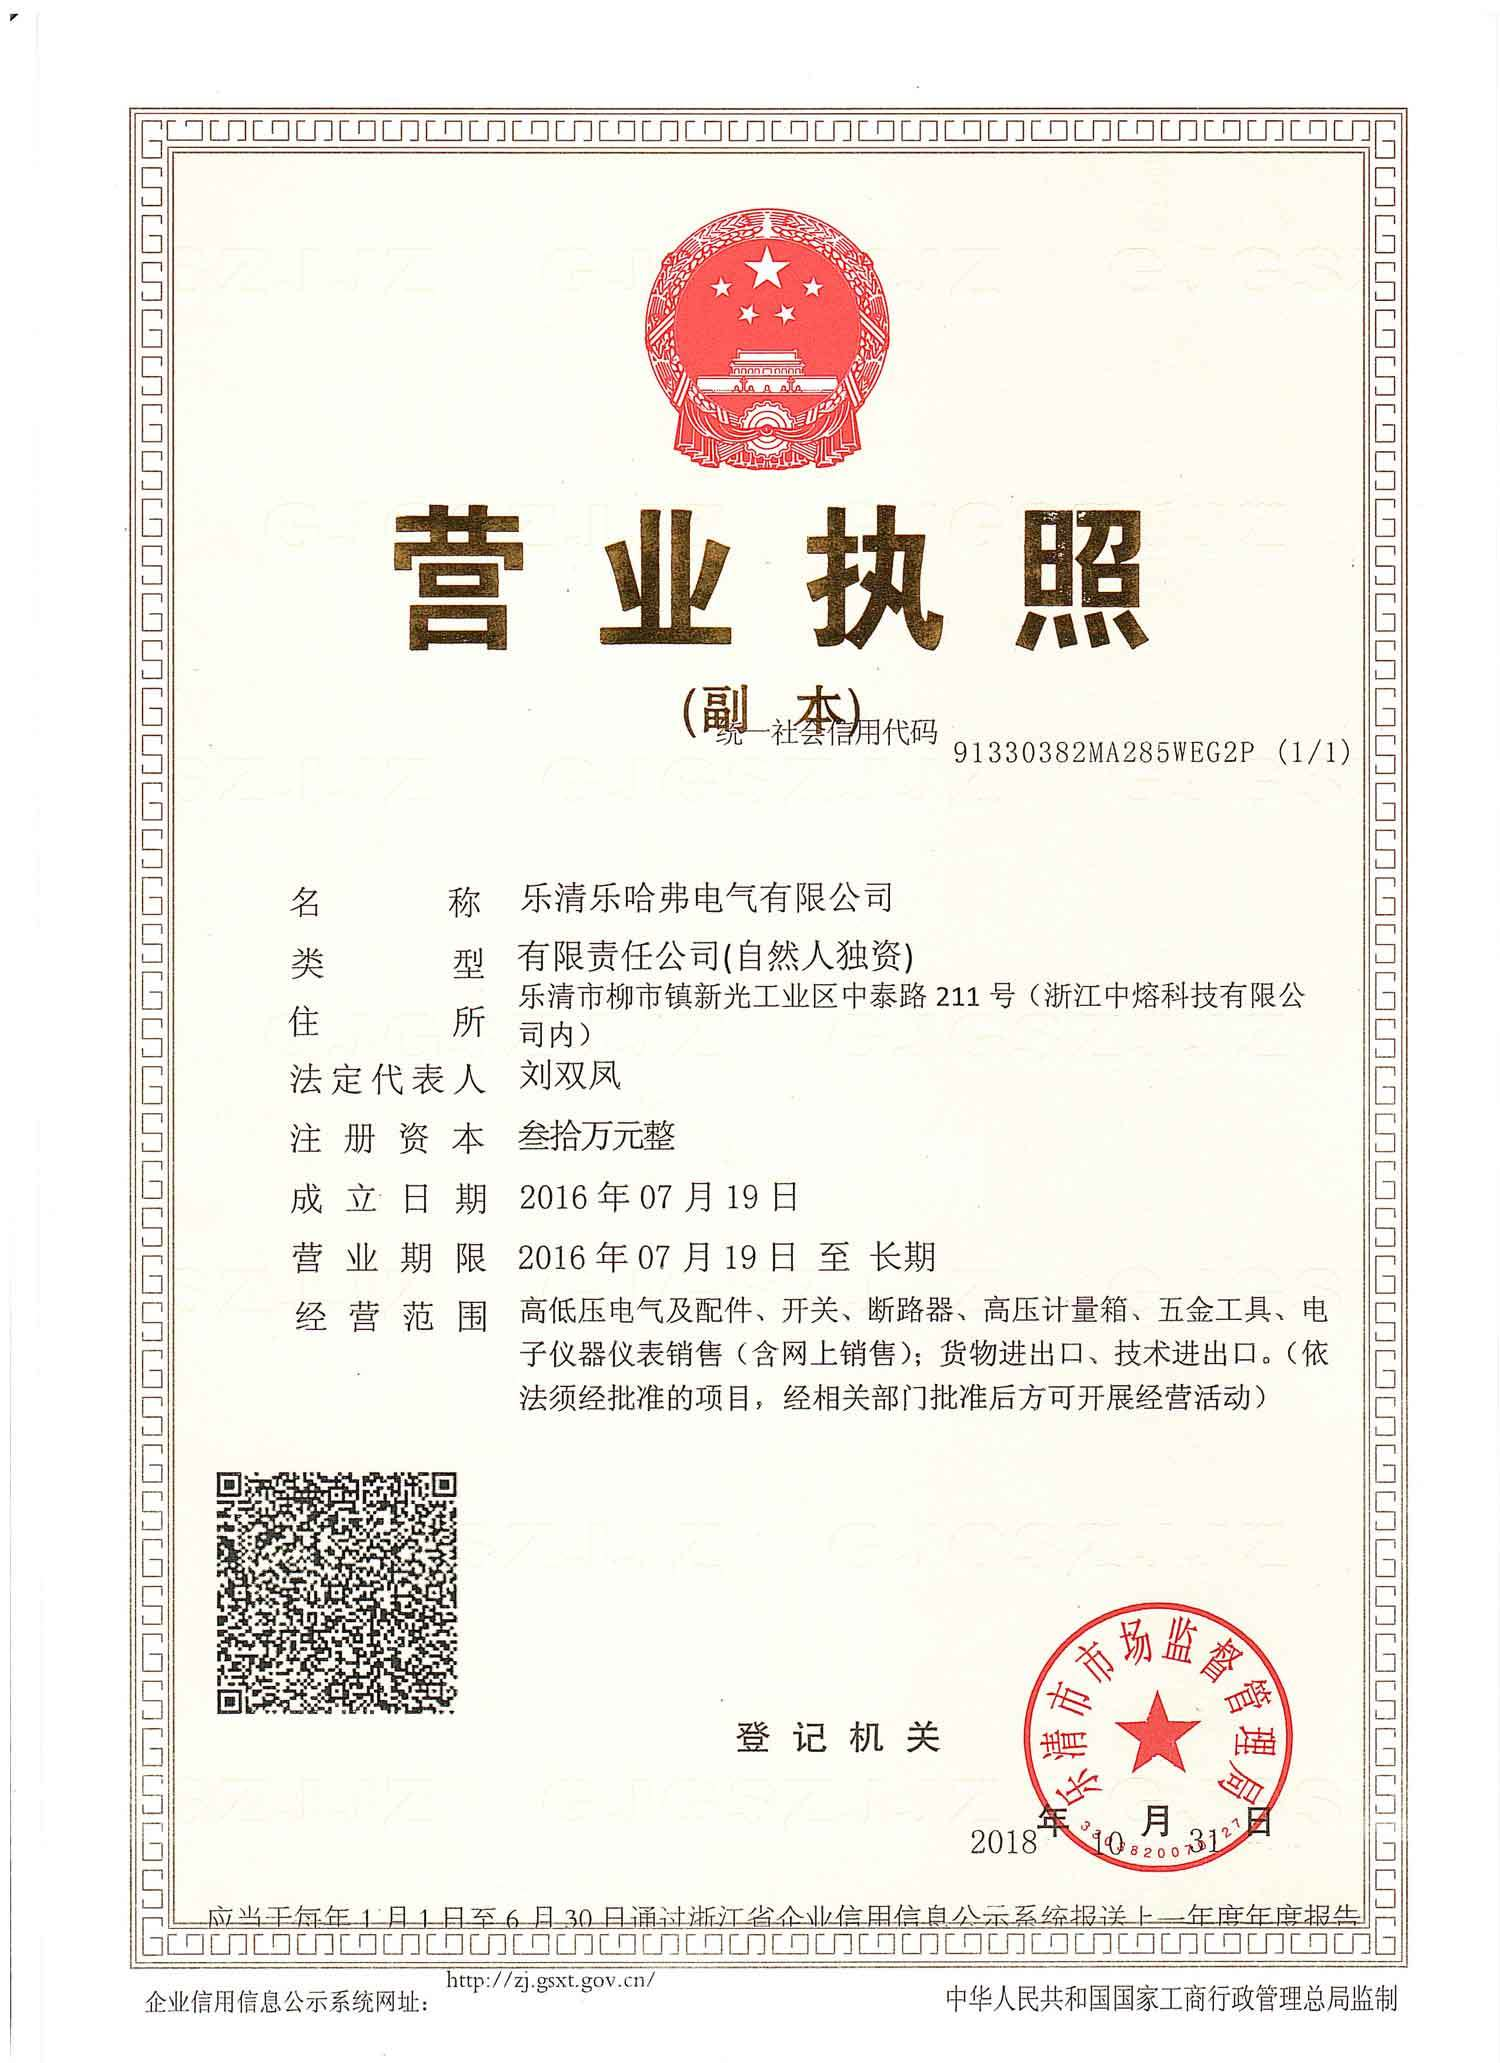 Yueqing Sofielec Electrical Co., Ltd. business license